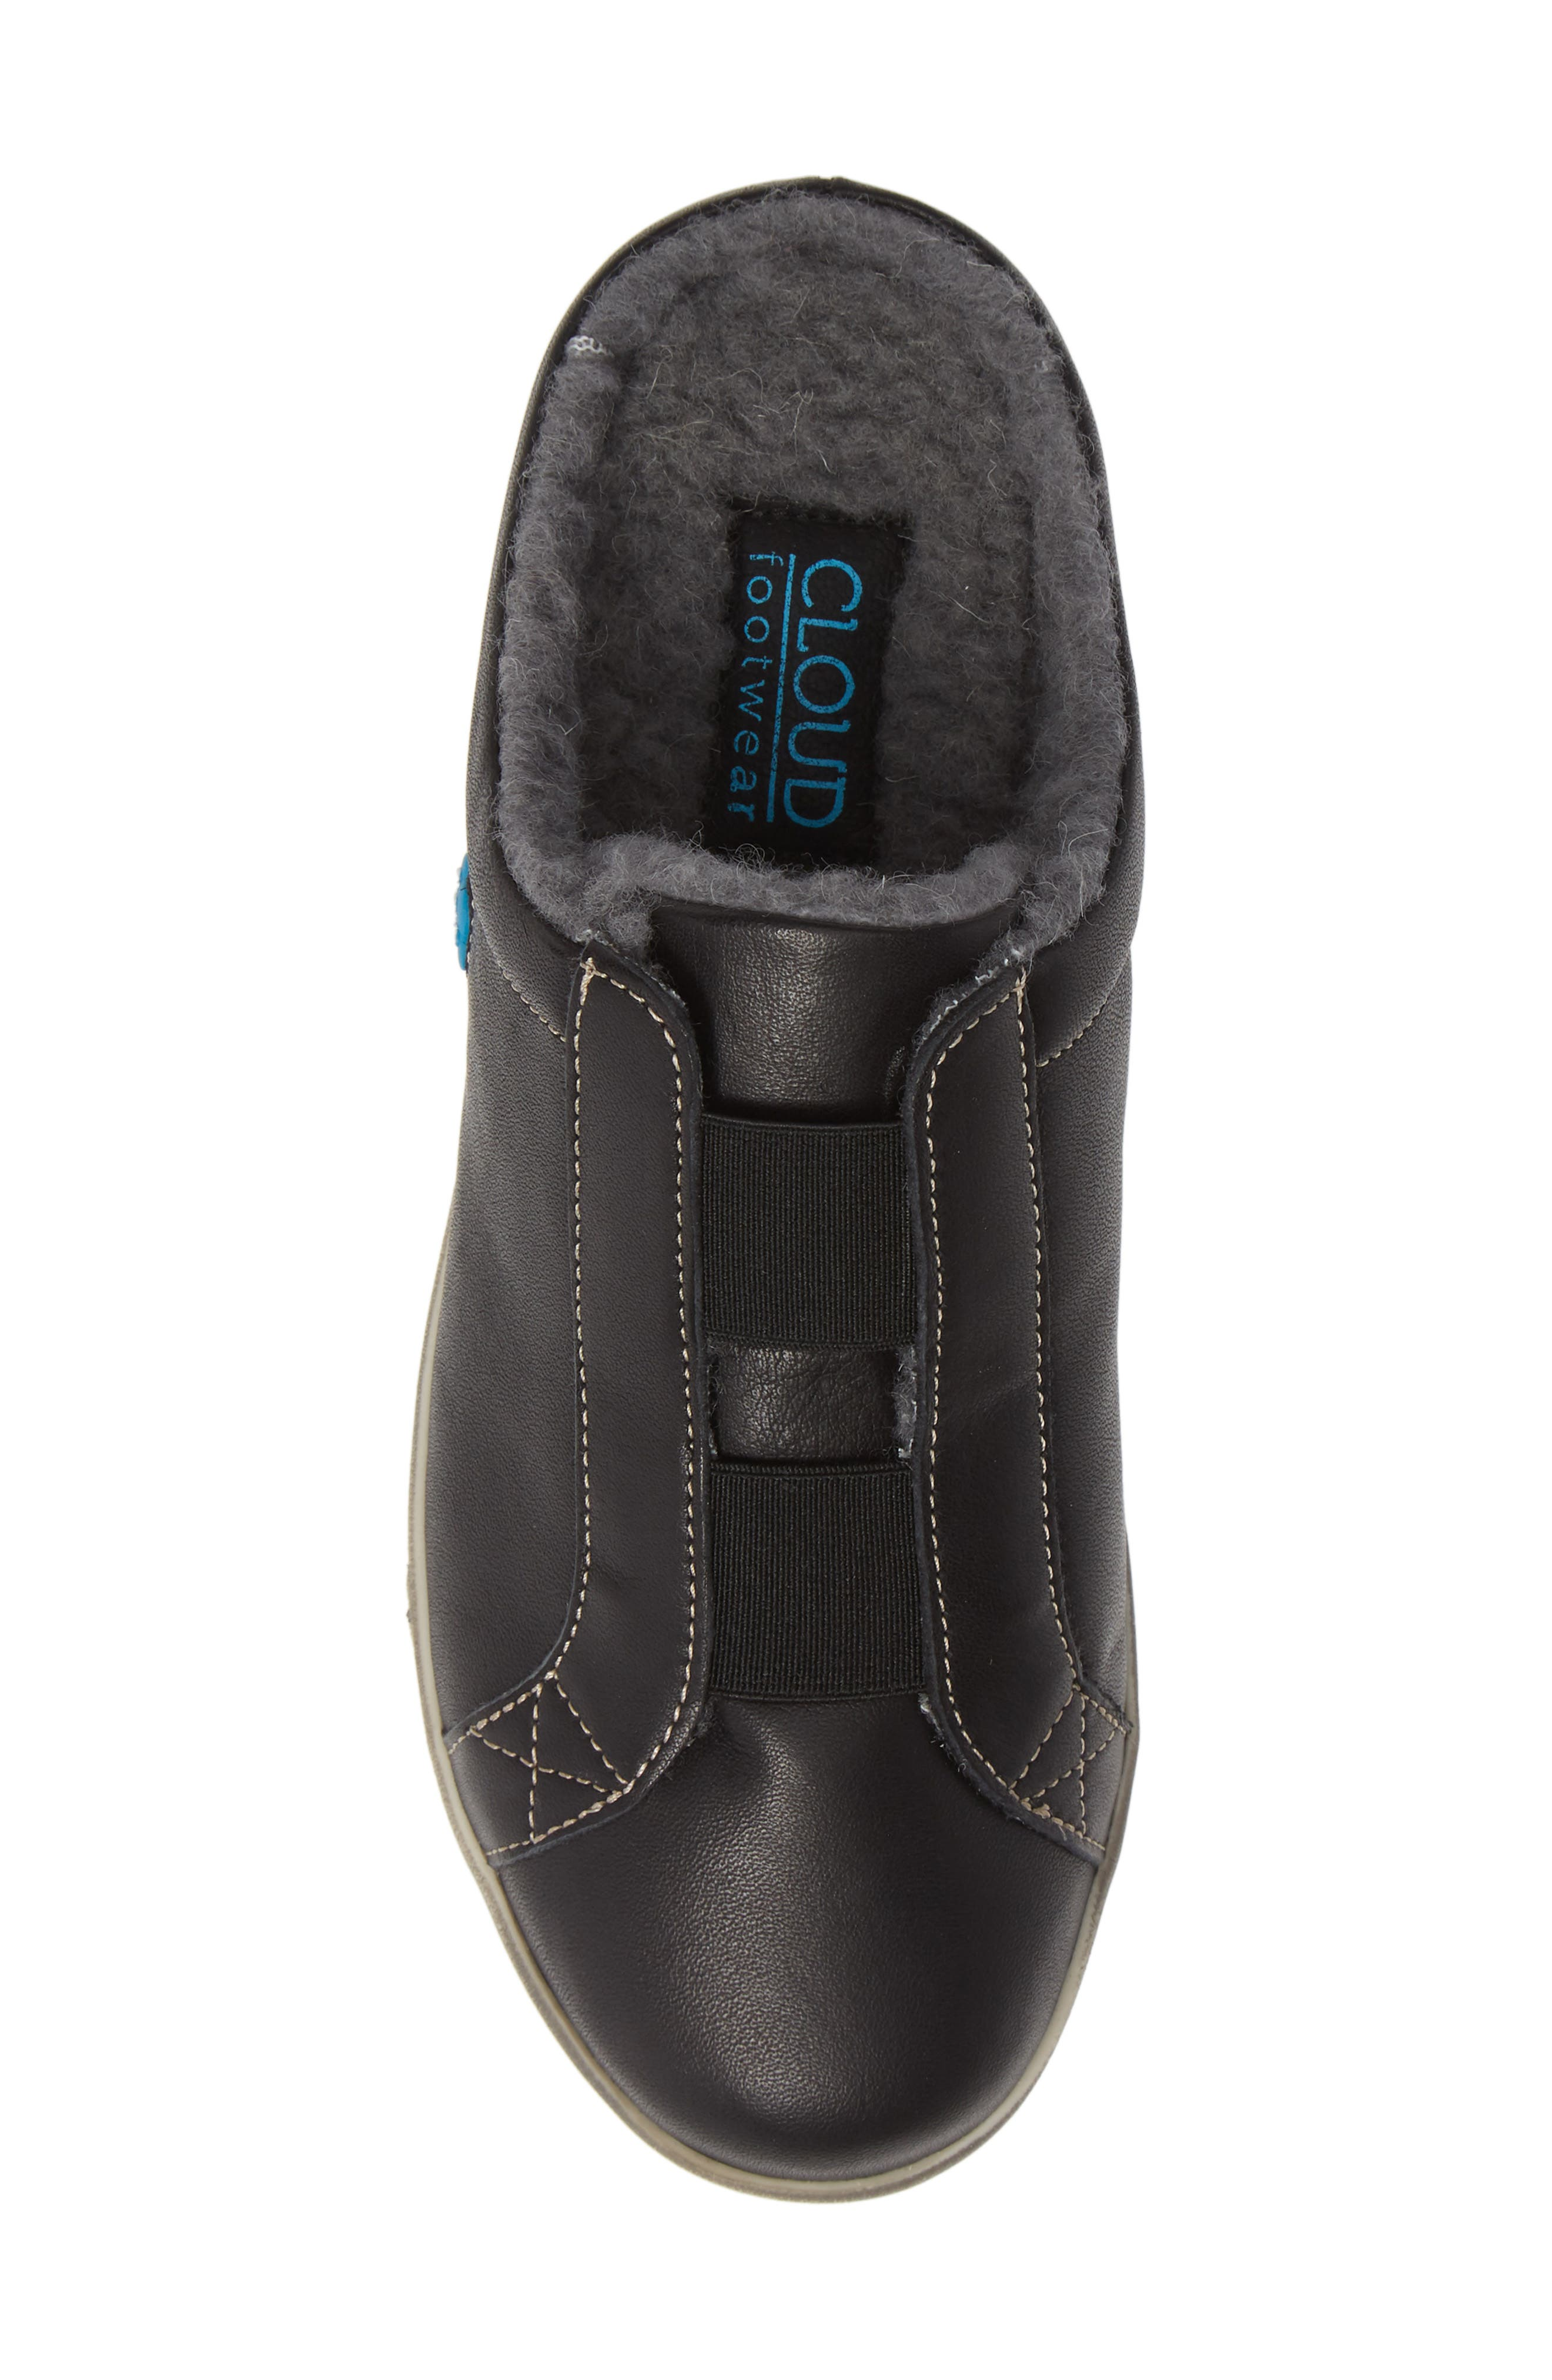 Alexis Wool Lined Backless Sneaker,                             Alternate thumbnail 5, color,                             BLACK LEATHER